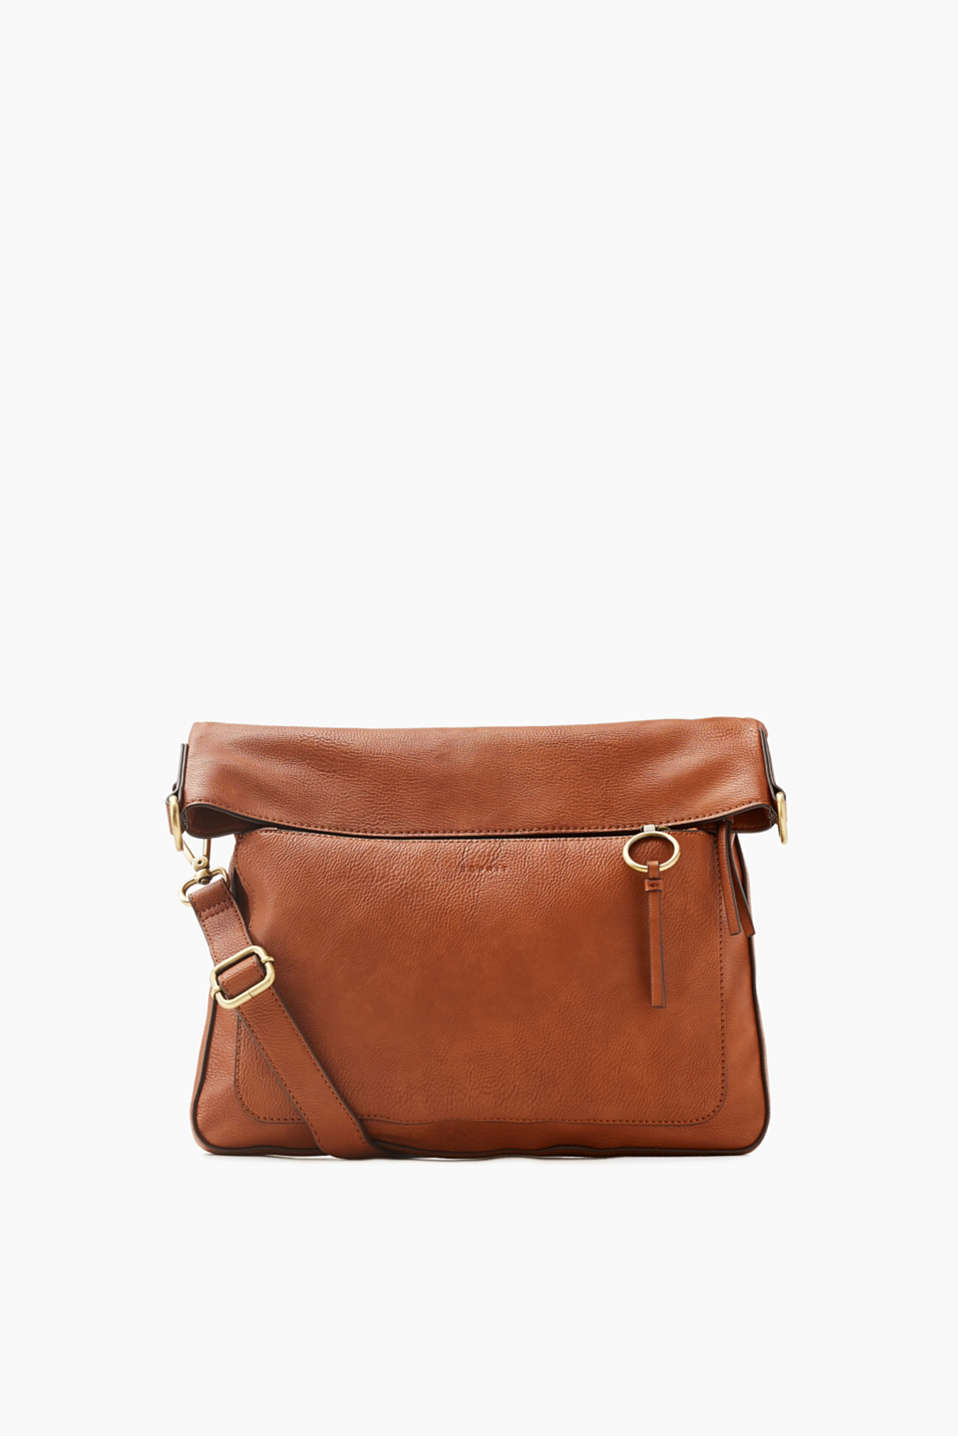 A daily essential! This fine, grainy, faux leather shoulder bag fulfils your everyday demands